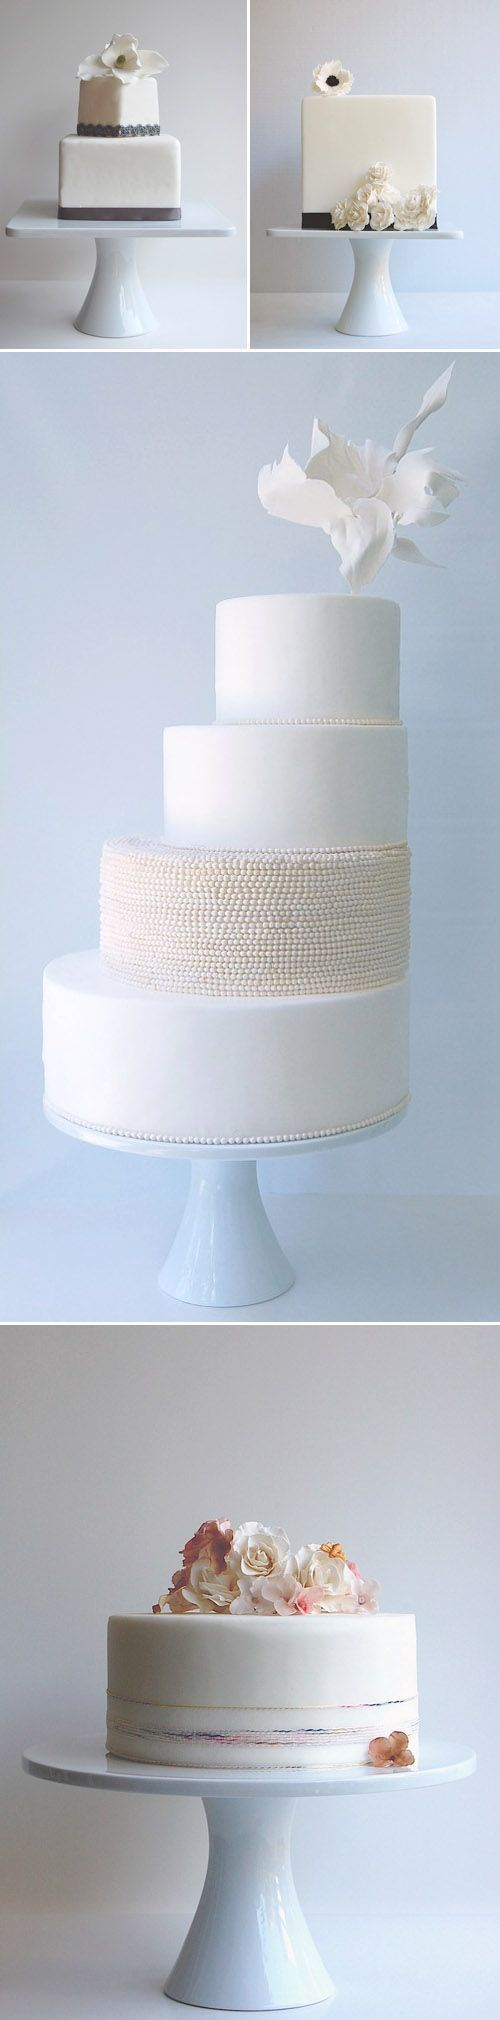 clean and modern wedding cakes from Maggie Austin Cakes, Washington, D.C., via JunebugWeddings.com. Beautiful!